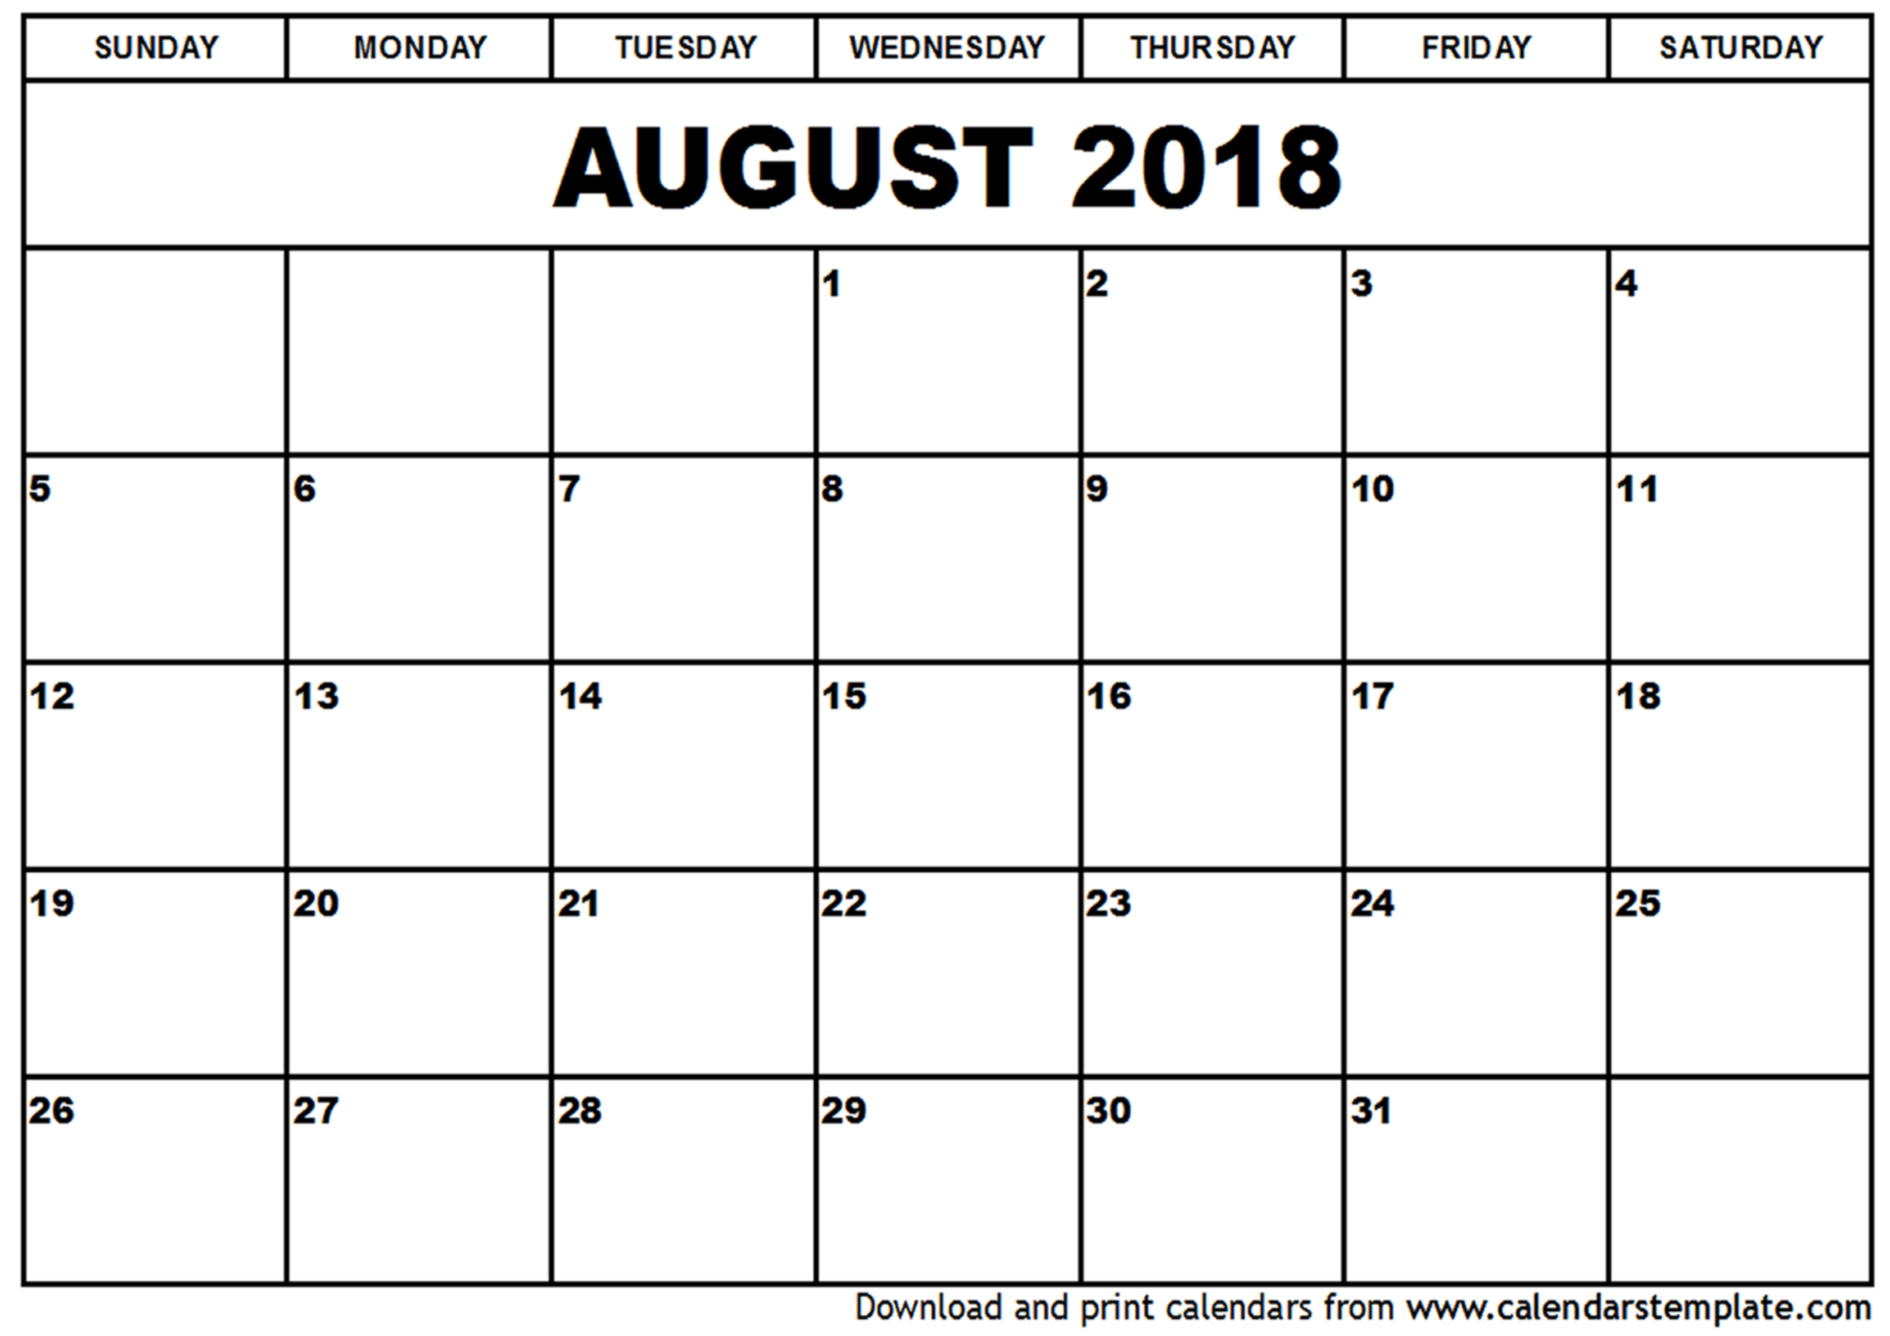 august 2018 calendar with holidays | printable calendar monthly